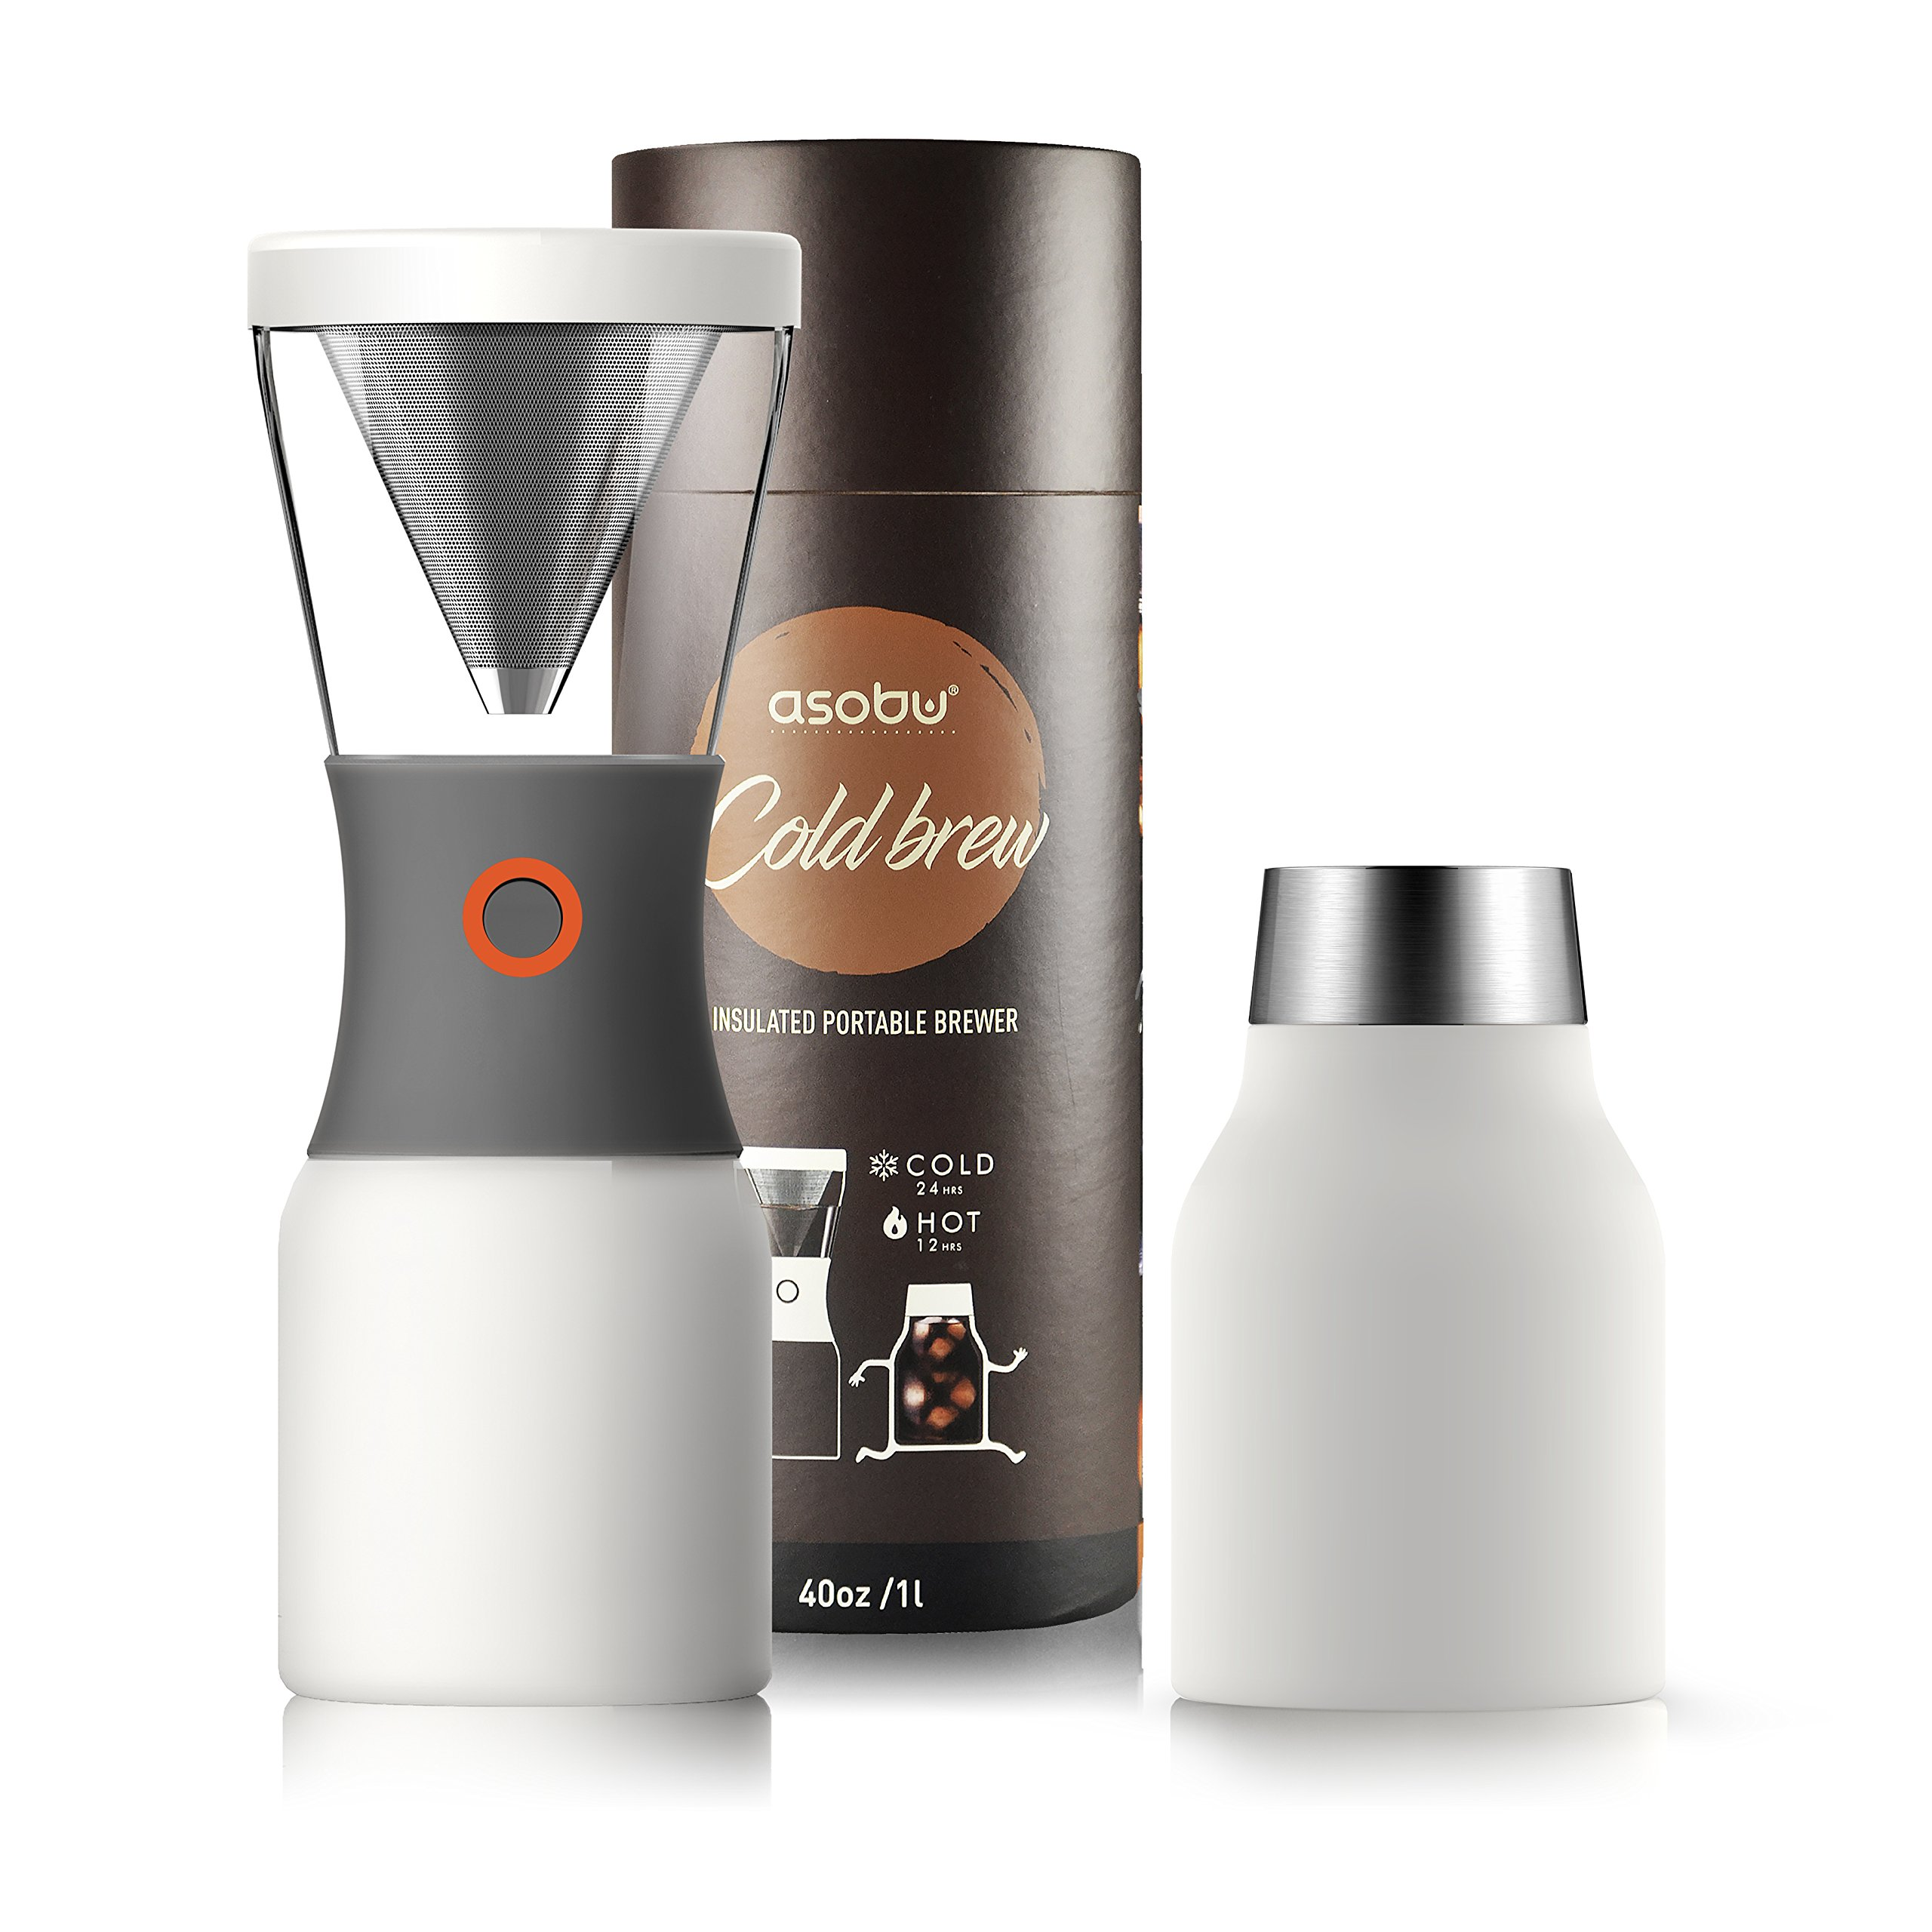 Asobu Coldbrew Portable Cold Brew Coffee Maker With a Vacuum Insulated 40oz Stainless Steel 18/8 Carafe Bpa Free (White) by Asobu